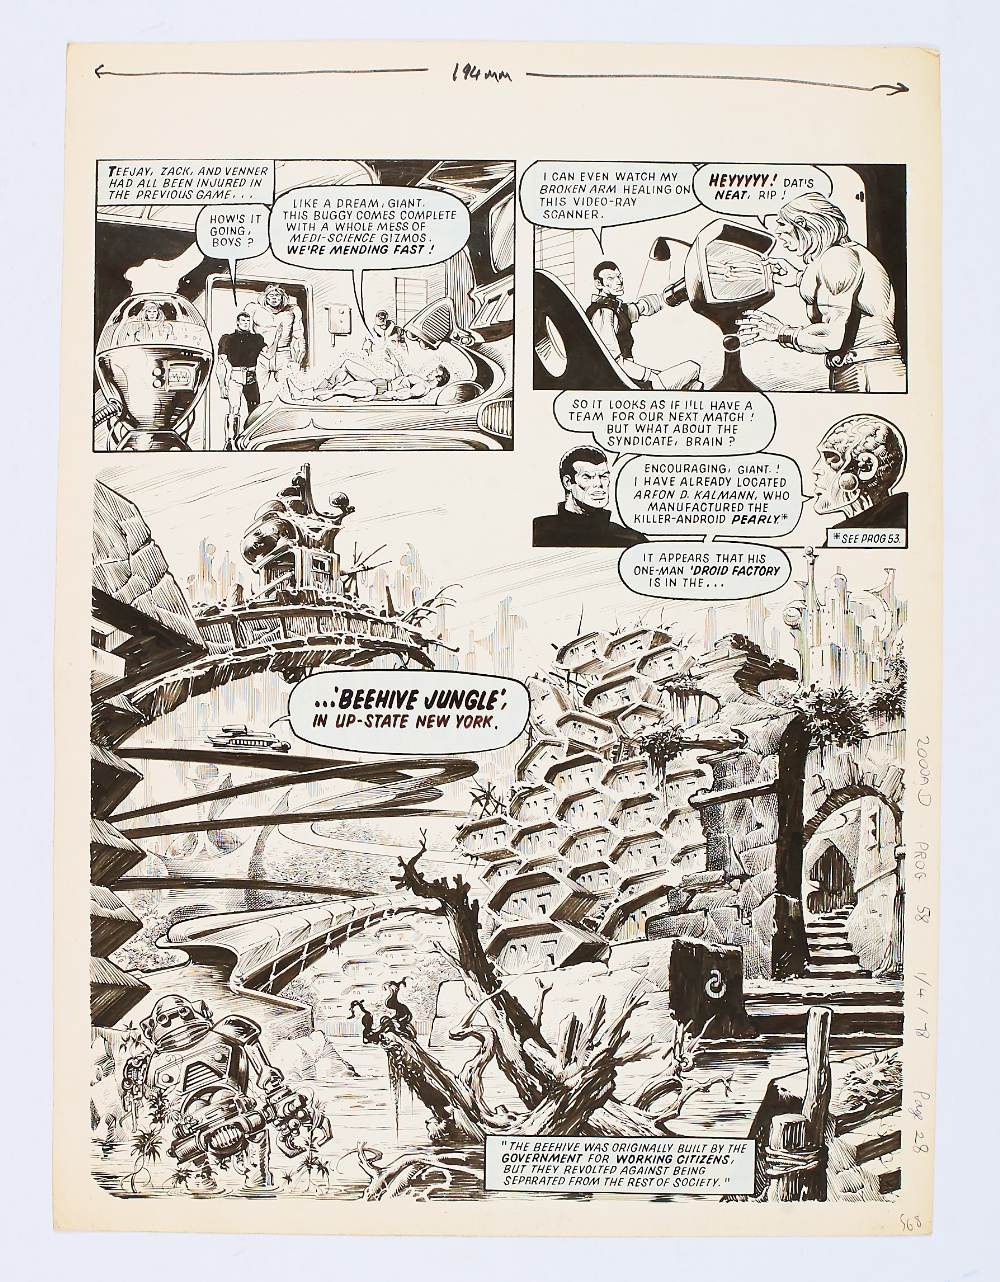 Lot 110 - 2000 AD / Inferno original artwork by Massimo Benardinelli from Prog 58 page 28 April 1 1978. Indian